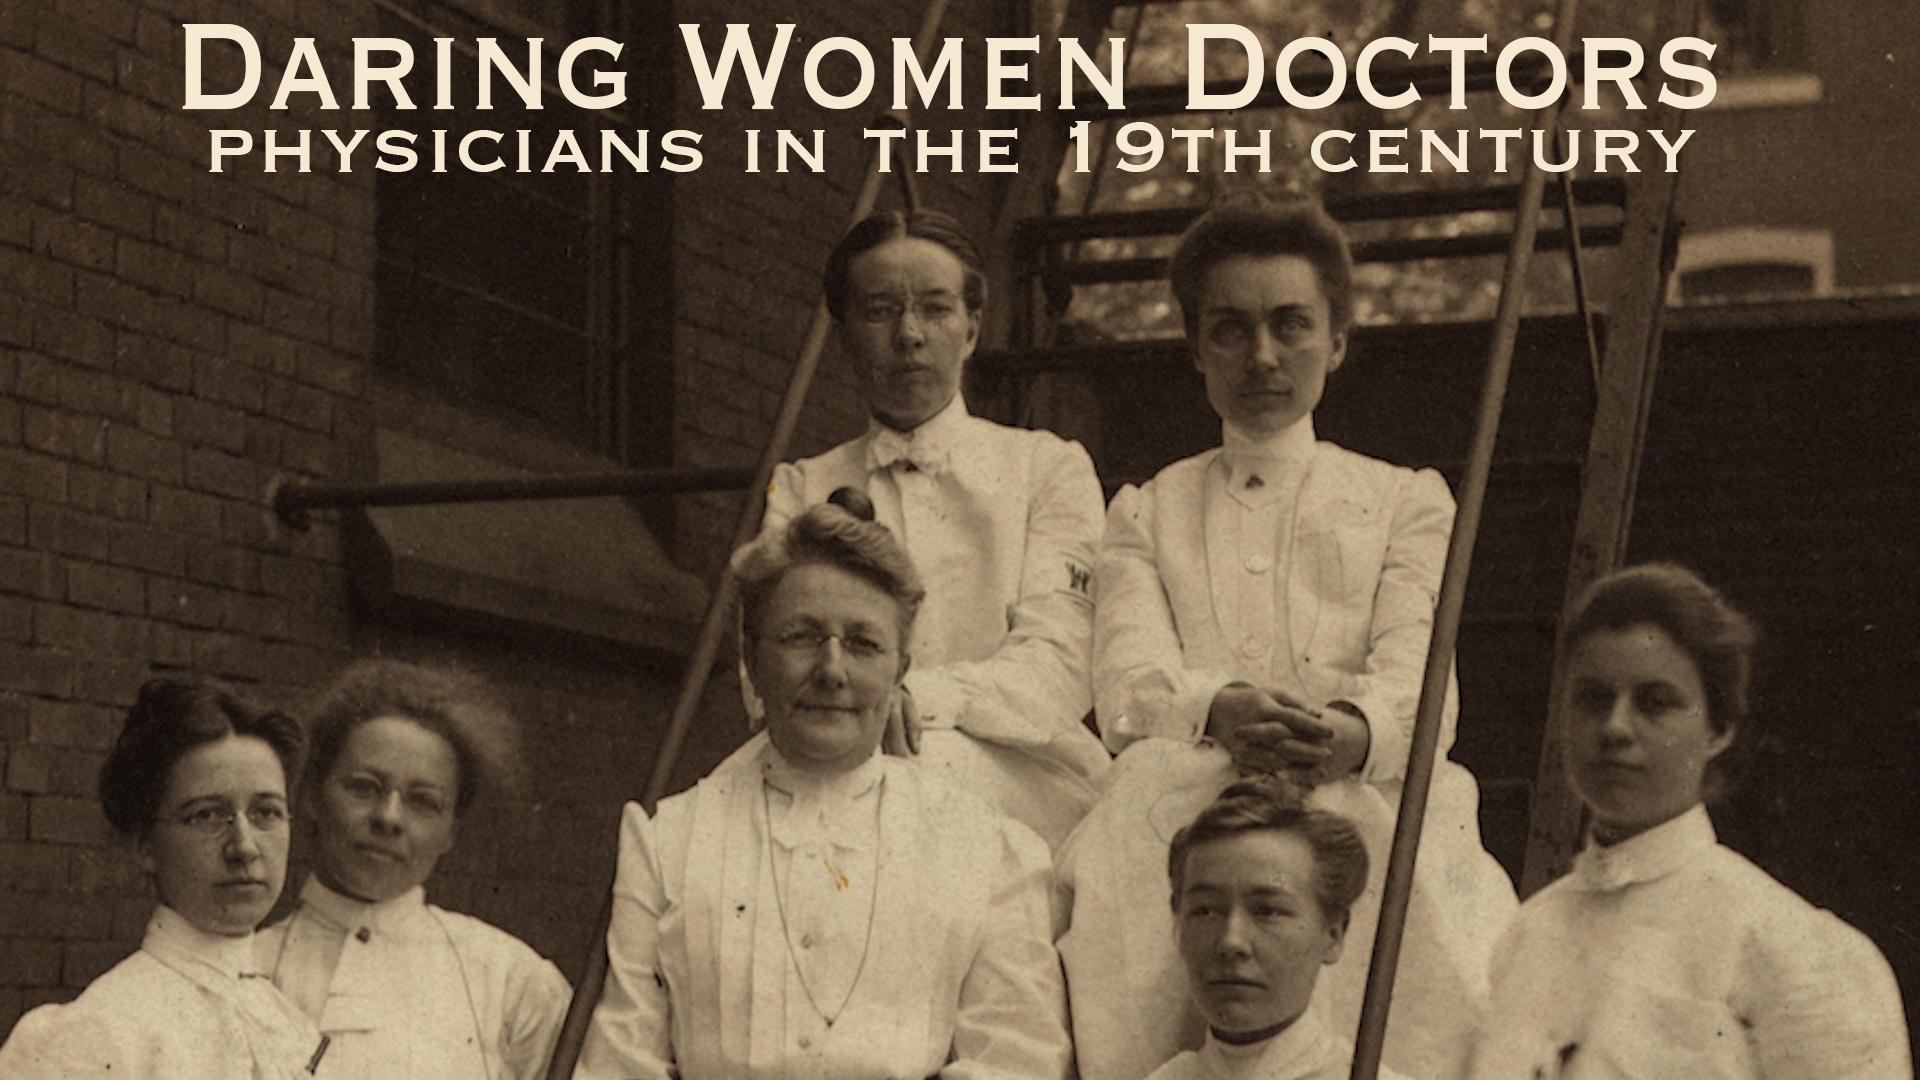 daring women doctors